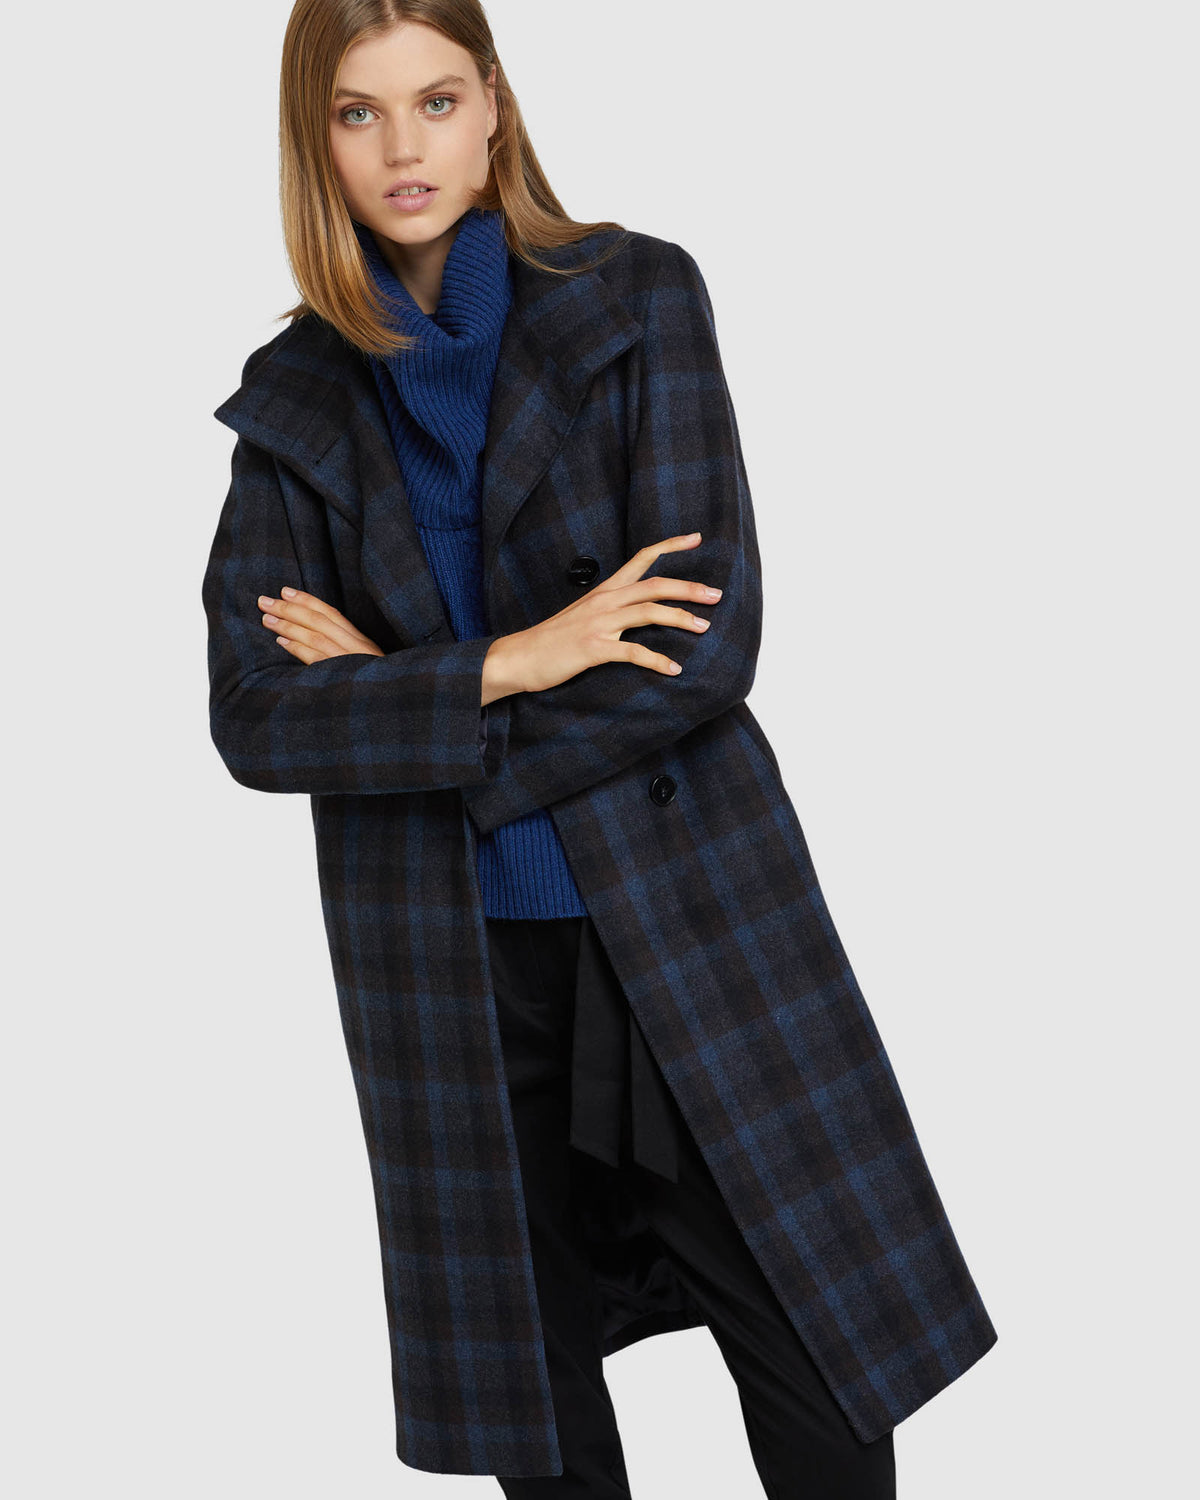 OLIVIA CHECKED WOOL BLEND COAT BLUE/CHARCOAL